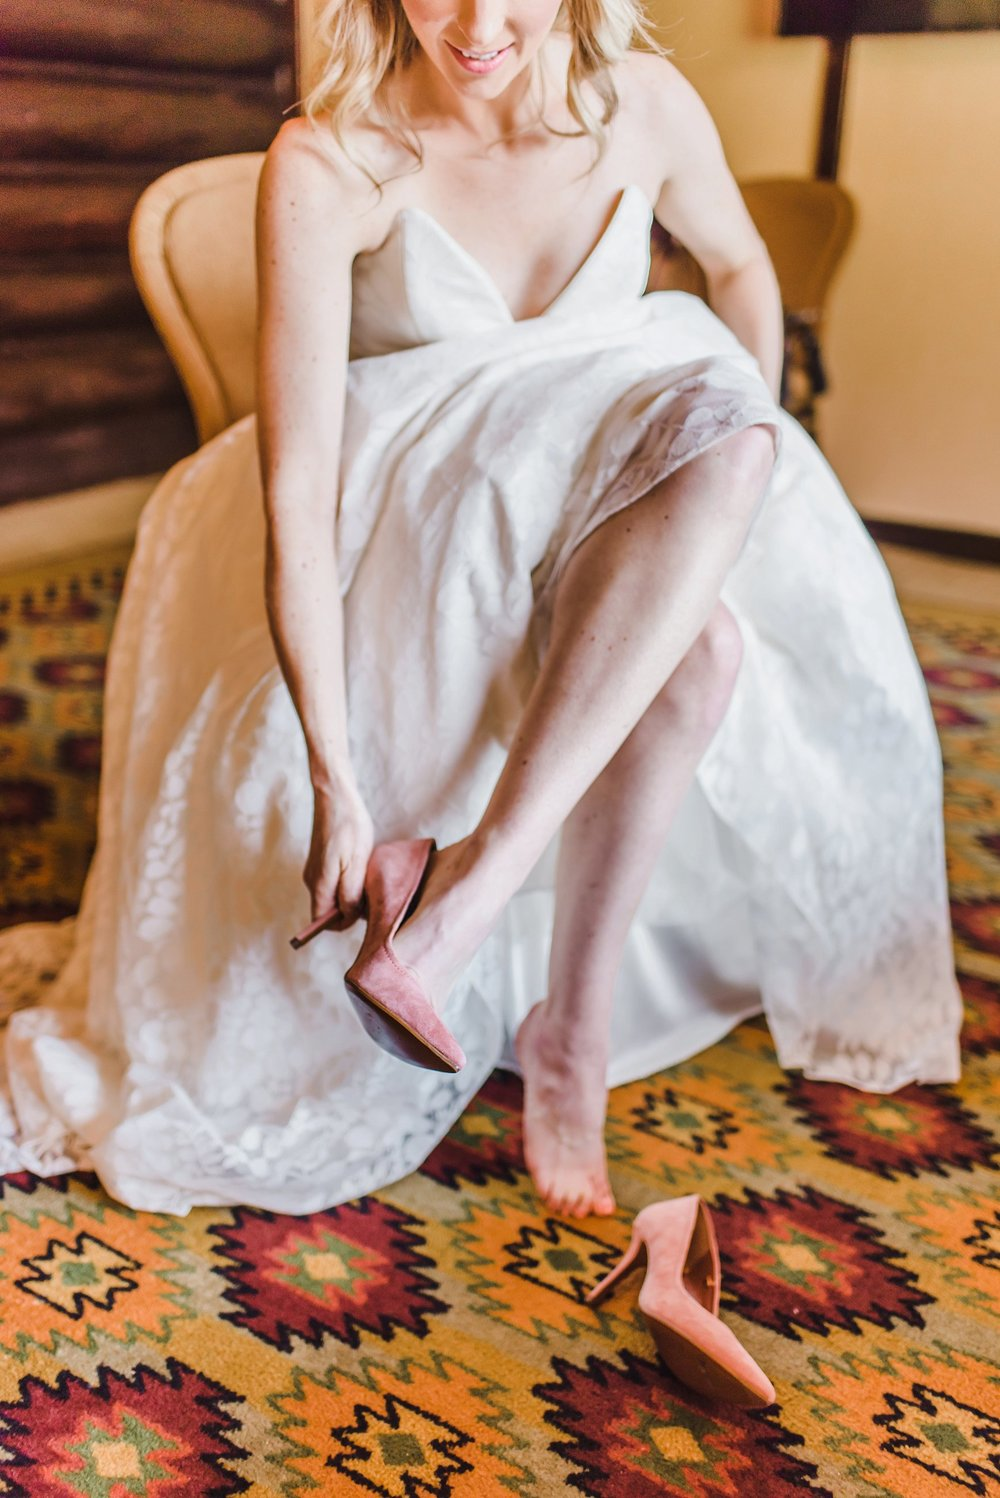 light airy indie fine art ottawa wedding photographer | Ali and Batoul Photography_0055.jpg